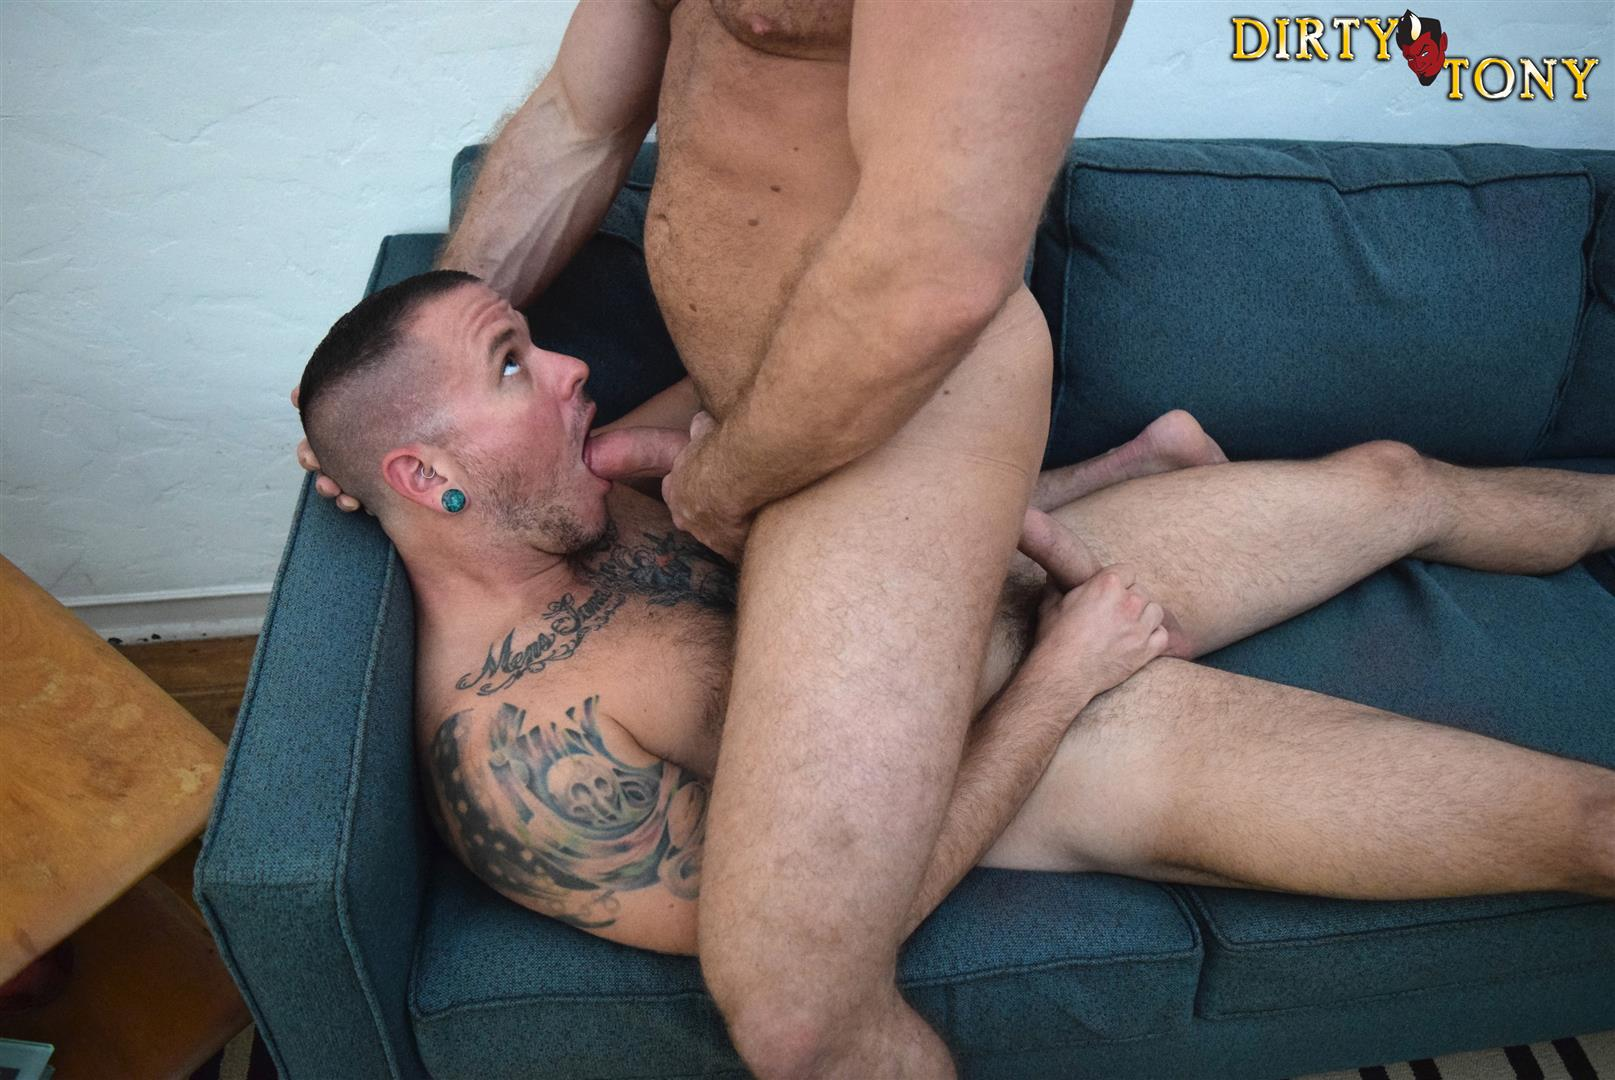 Dirty Tony Shay Michaels and Max Cameron Hairy Muscle Hunk Bareback Amateur Gay Porn 08 Hairy Muscle Hunk Shay Michaels Barebacking Max Cameron